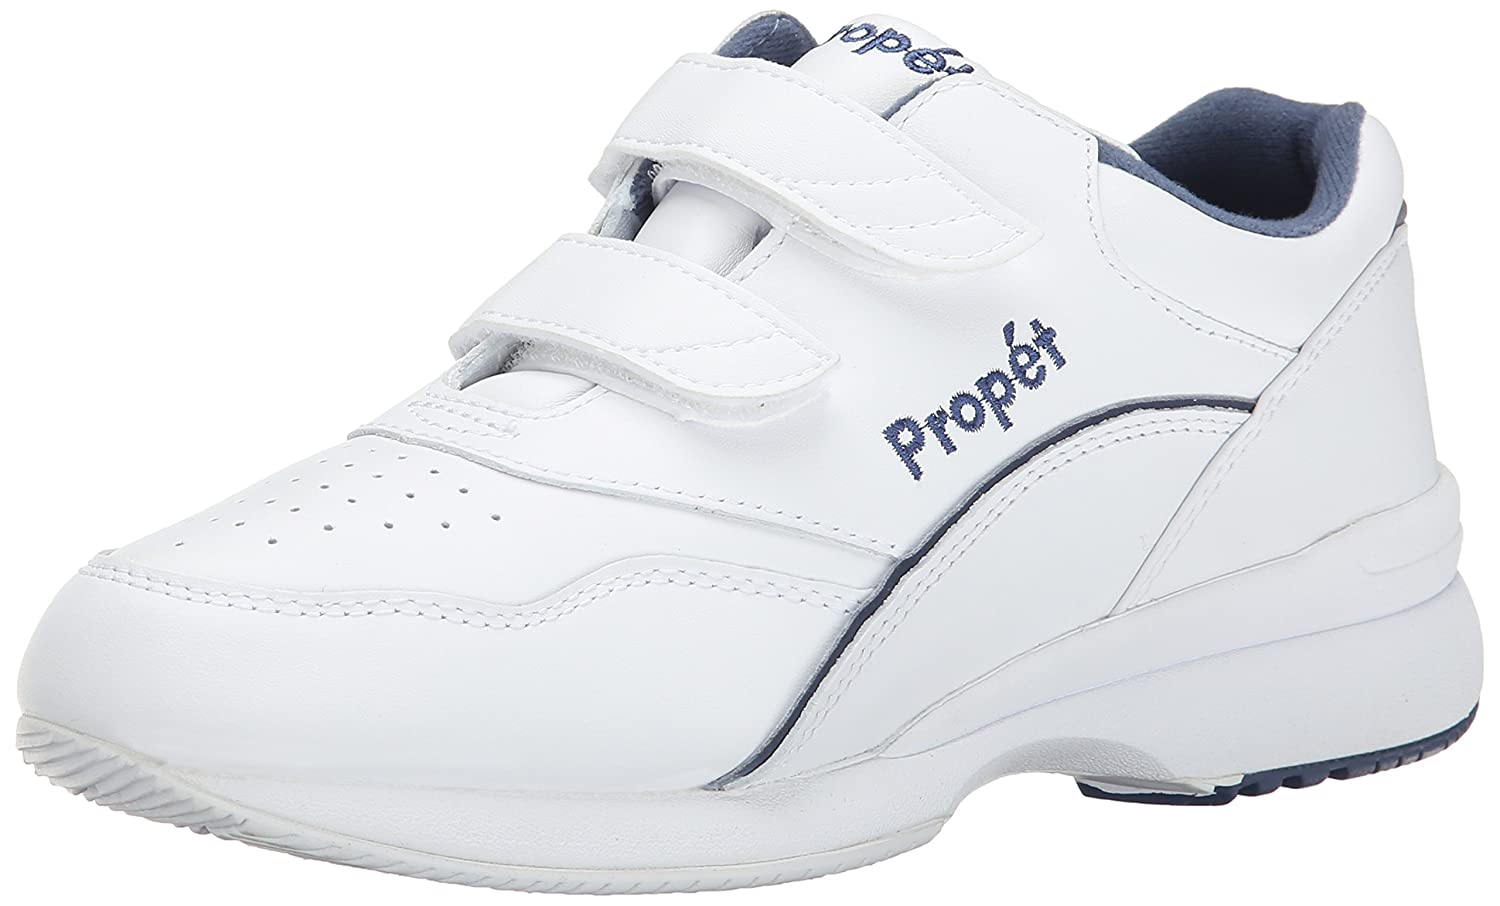 Propet Women's Tour Walker Strap Sneaker B000BO62P2 7.5 X US|White/Blue